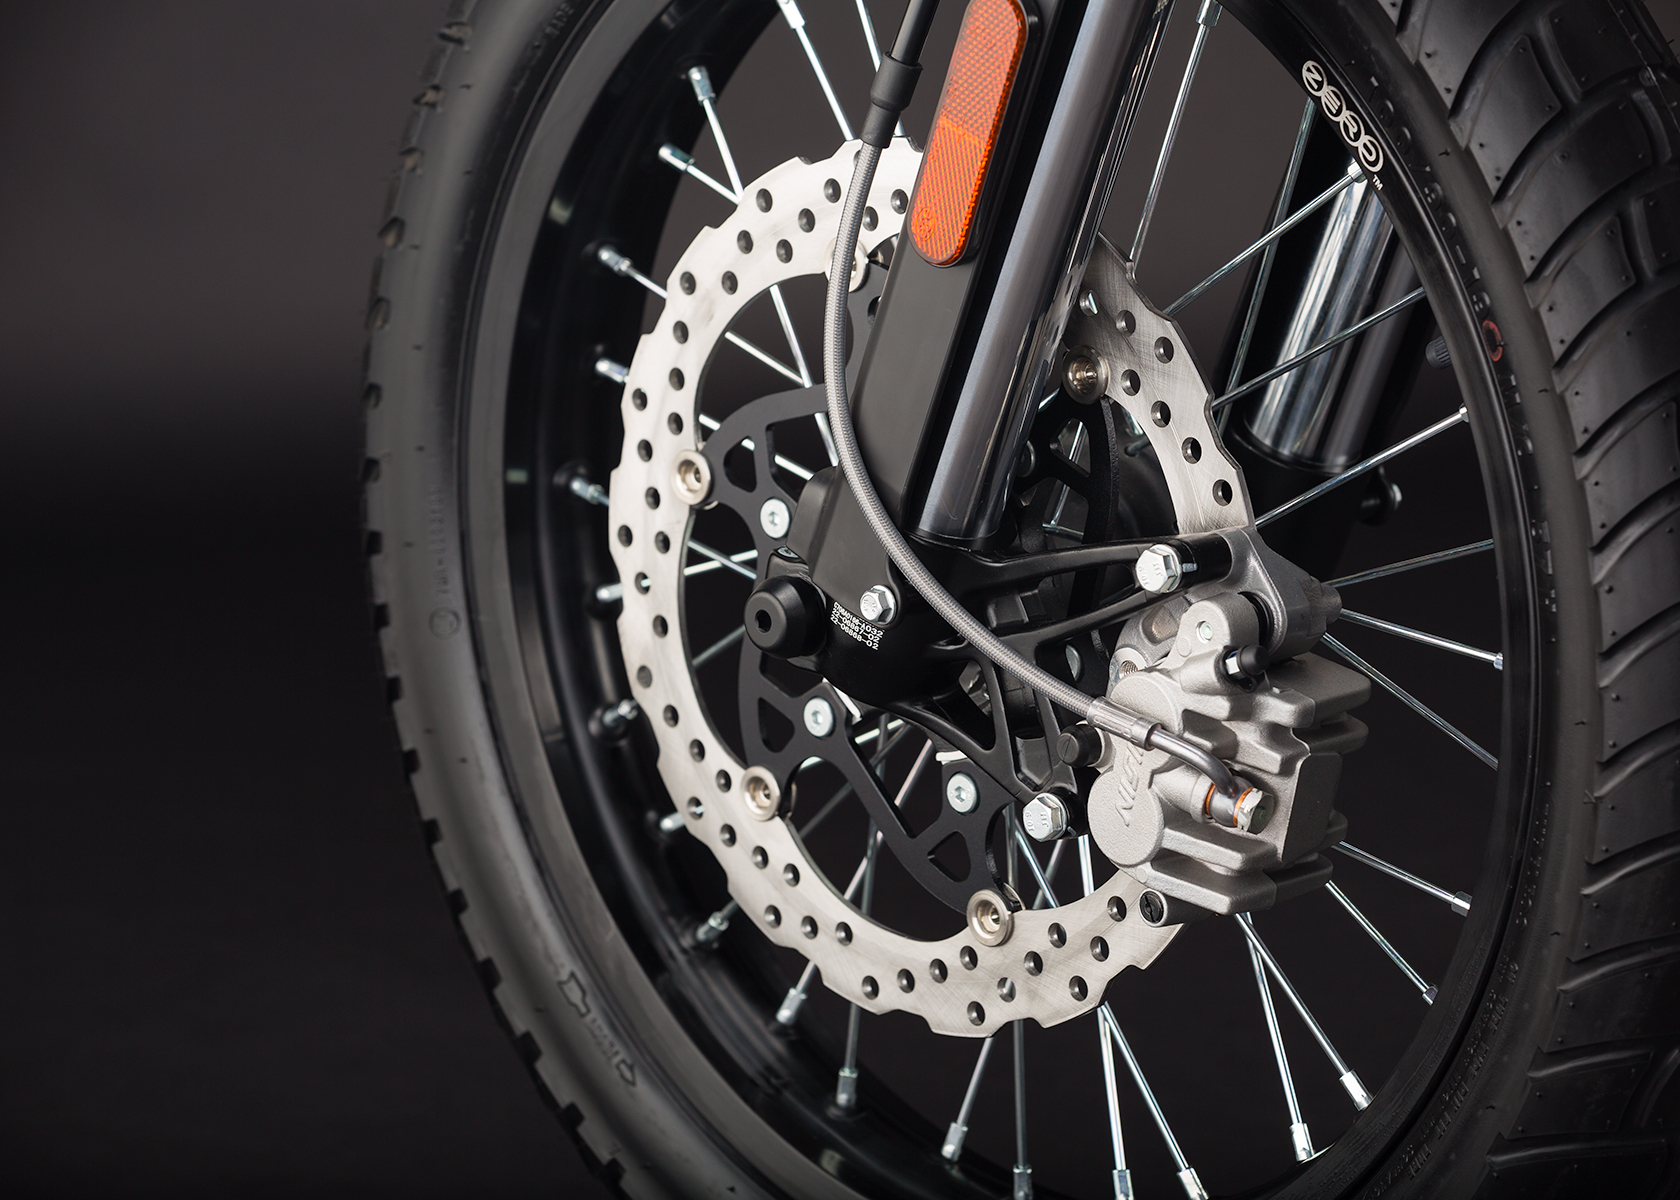 2014 Zero DS Electric Motorcycle: Front Brake